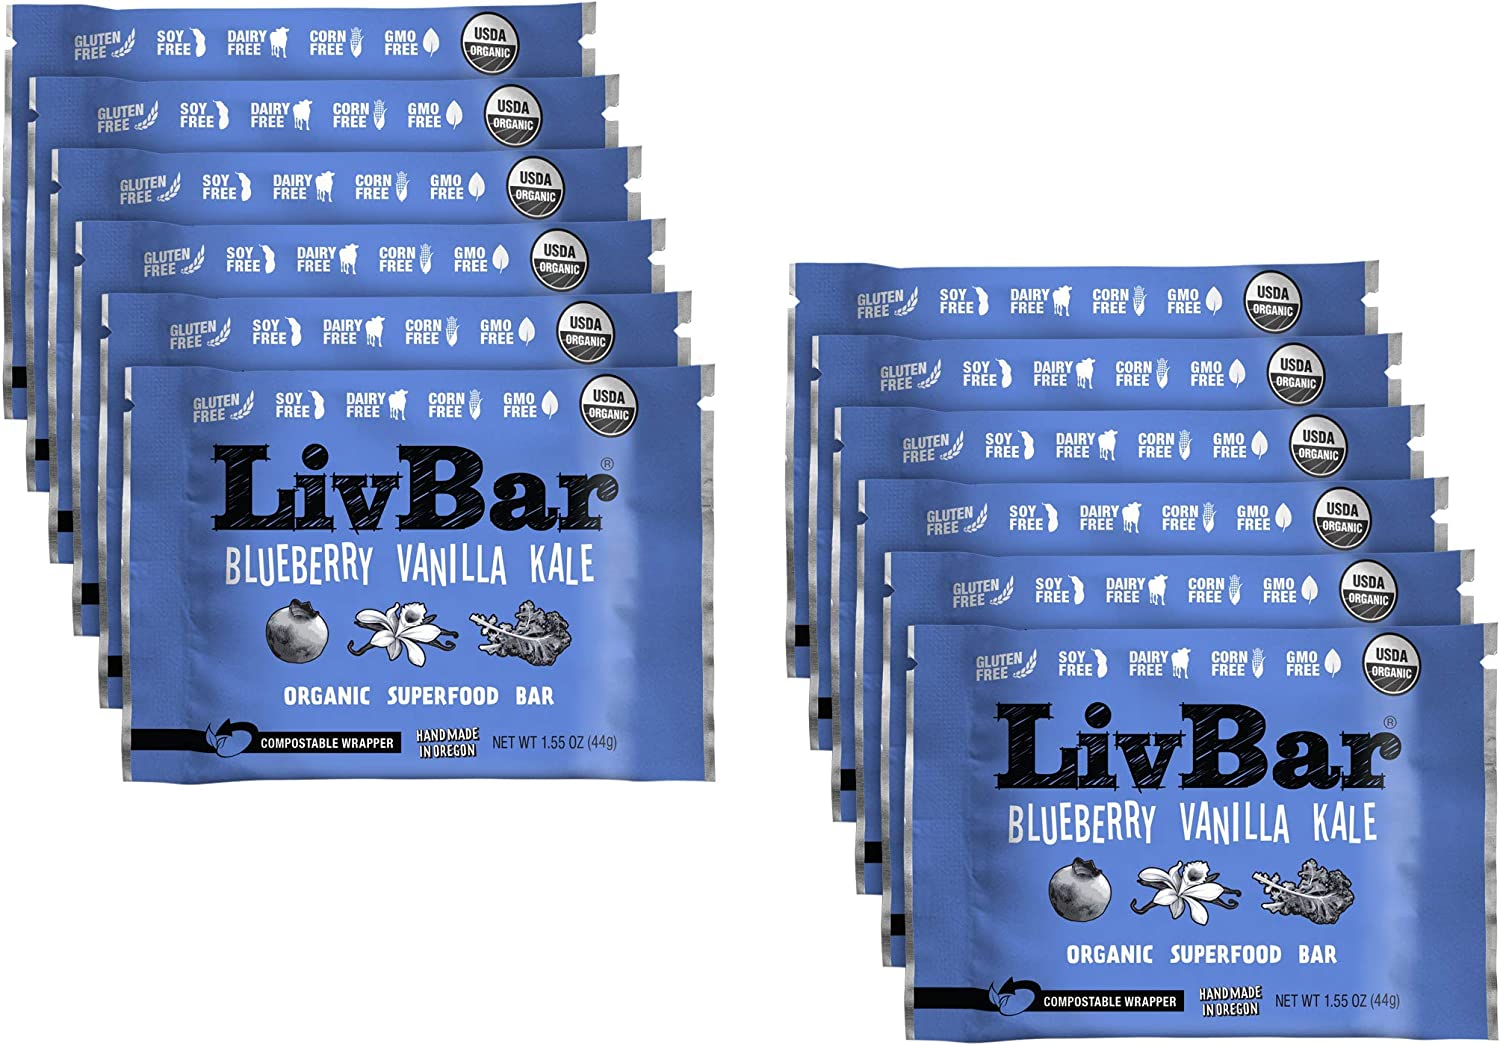 LivBar - Blueberry Vanilla Kale Organic Superfood Nutrition Bar - USDA Certified - Gluten Free, Peanut Free, Soy Free, Dairy Free, Protein Snack Bars with Compostable Wrapper - 12 Pack